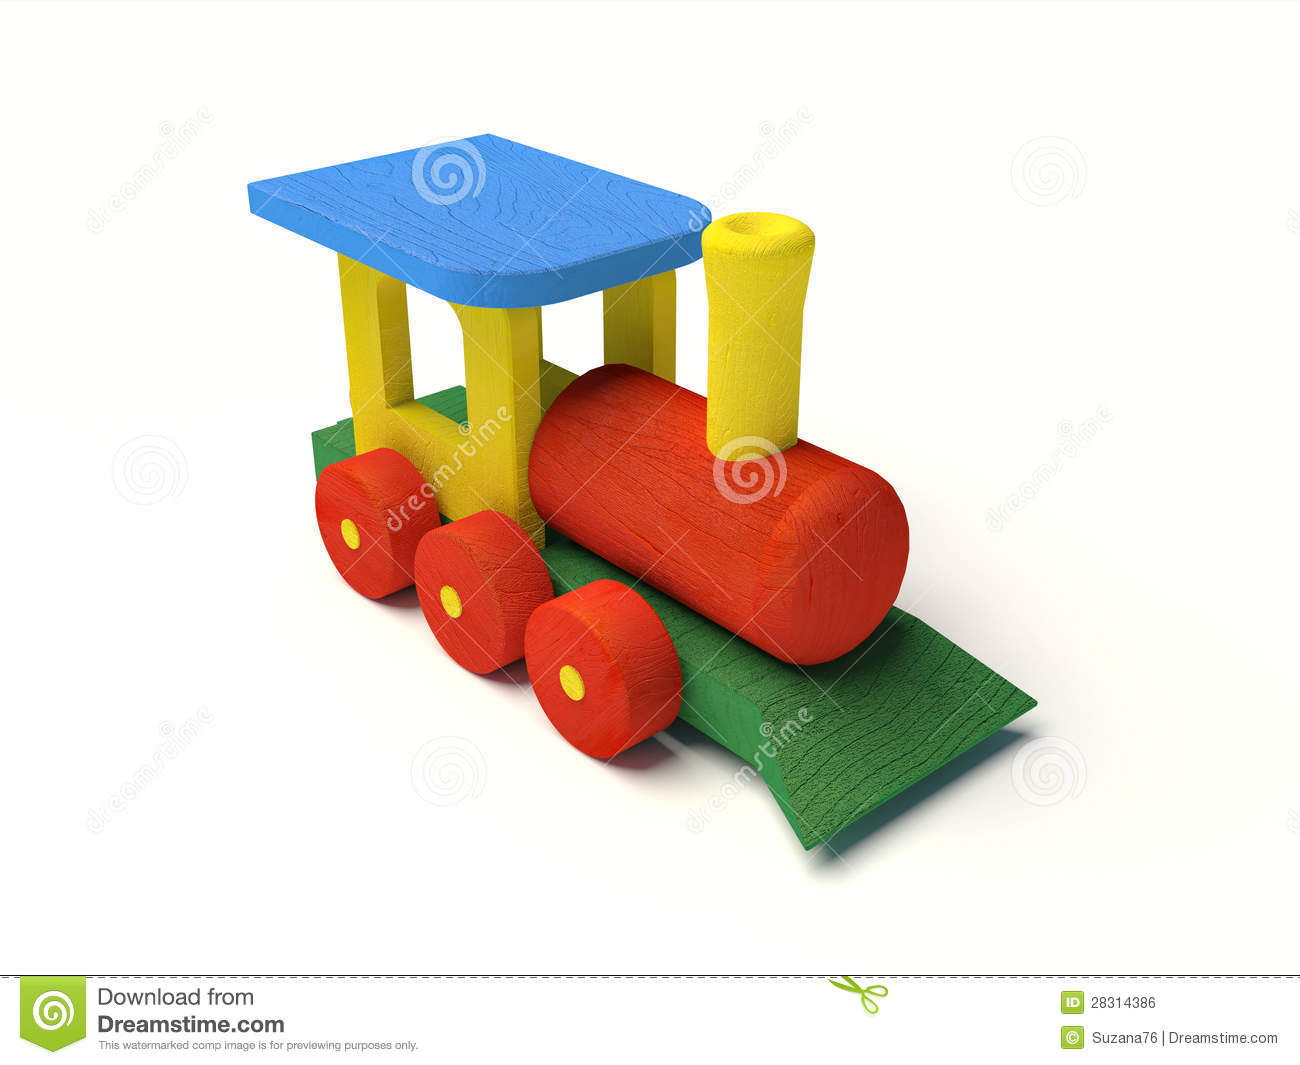 Wooden Toy Train Color Royalty Free Stock Image - Image: 28314386